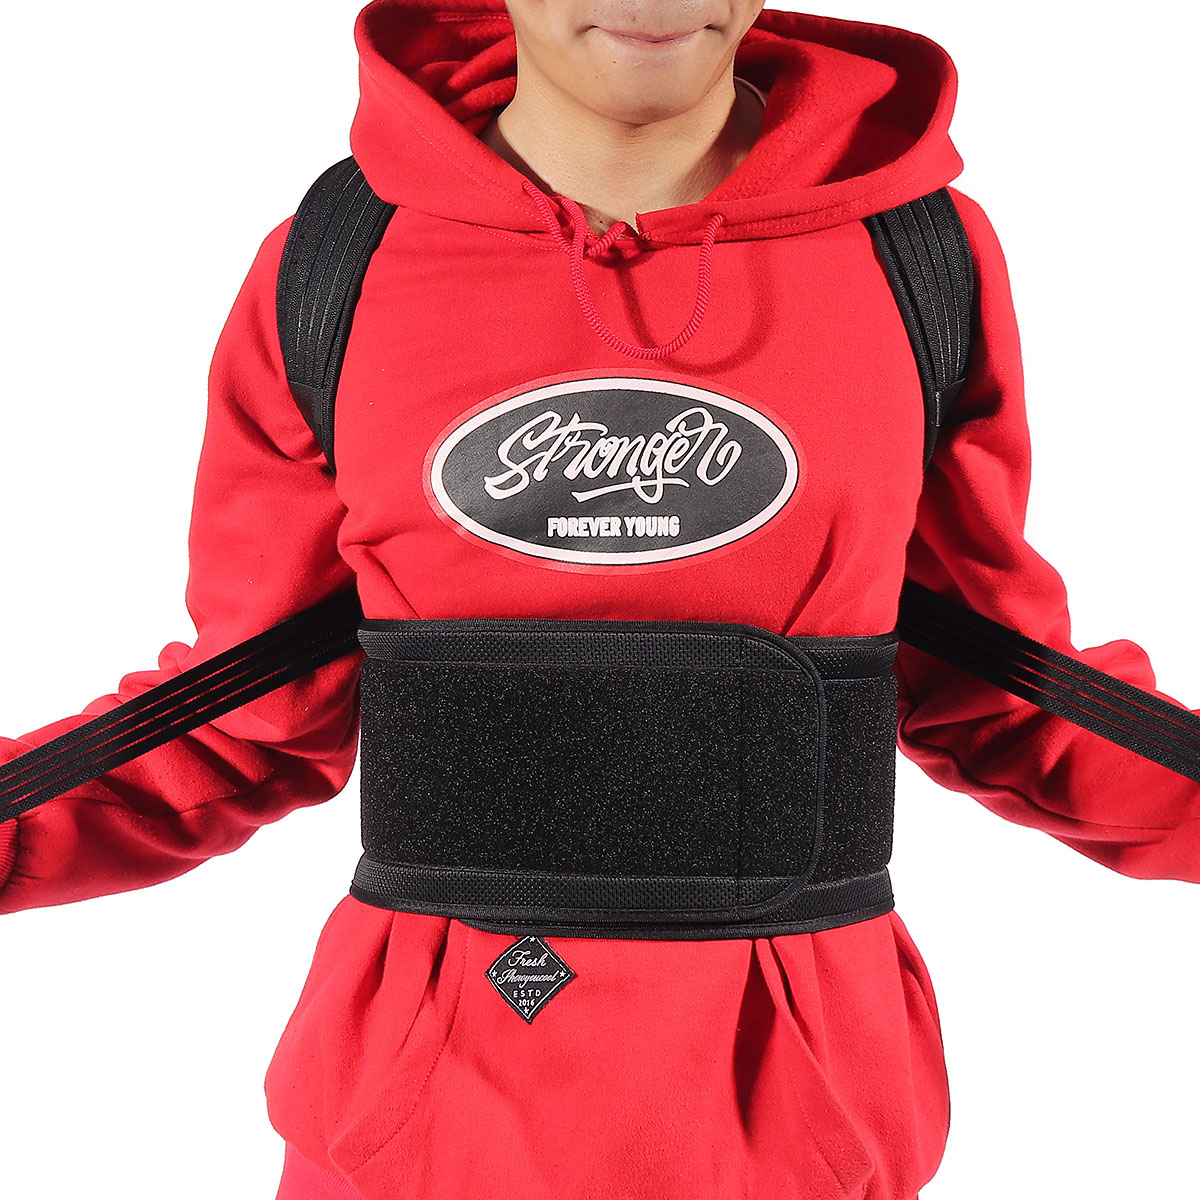 Adjustable Hunchbacked Posture Corrector